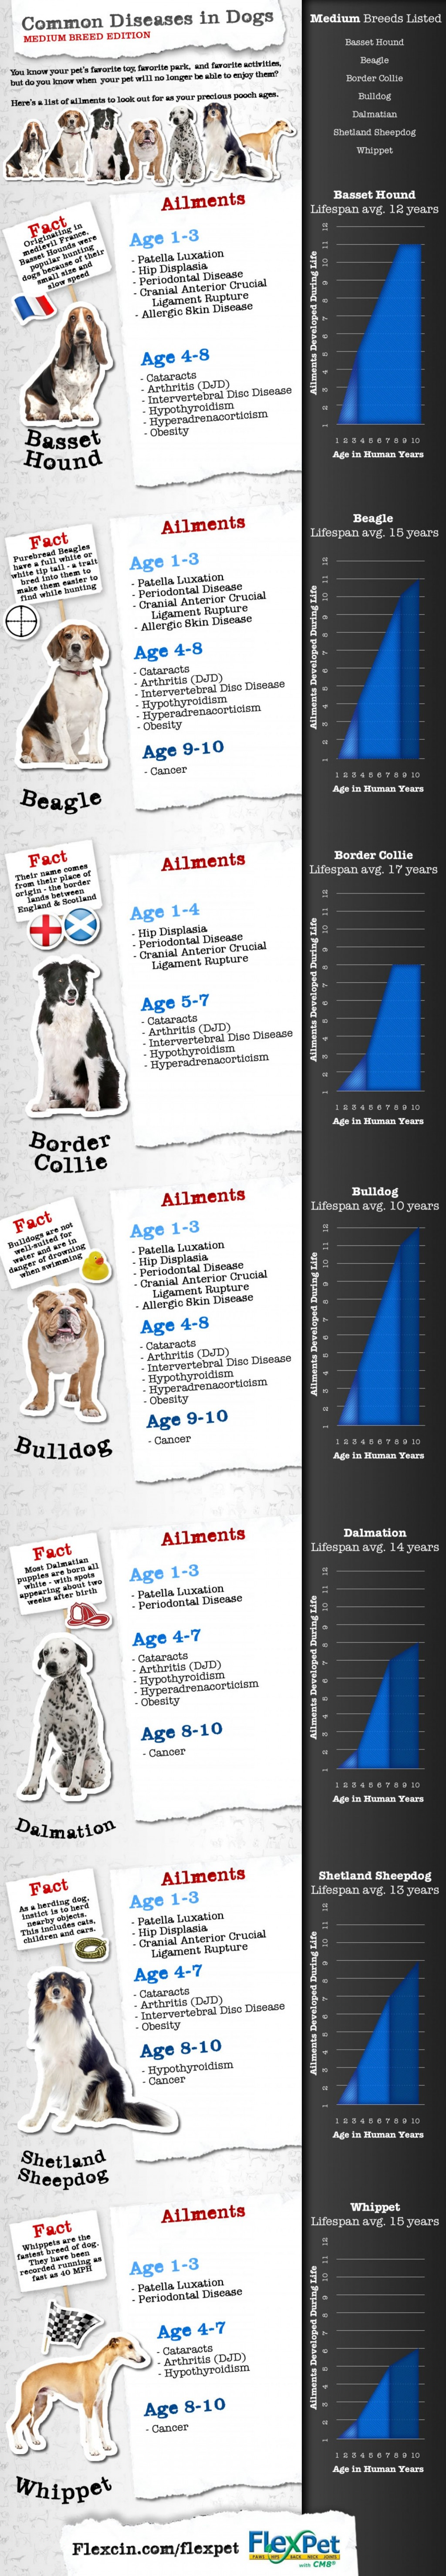 Most Common Diseases in Medium Dog Breeds